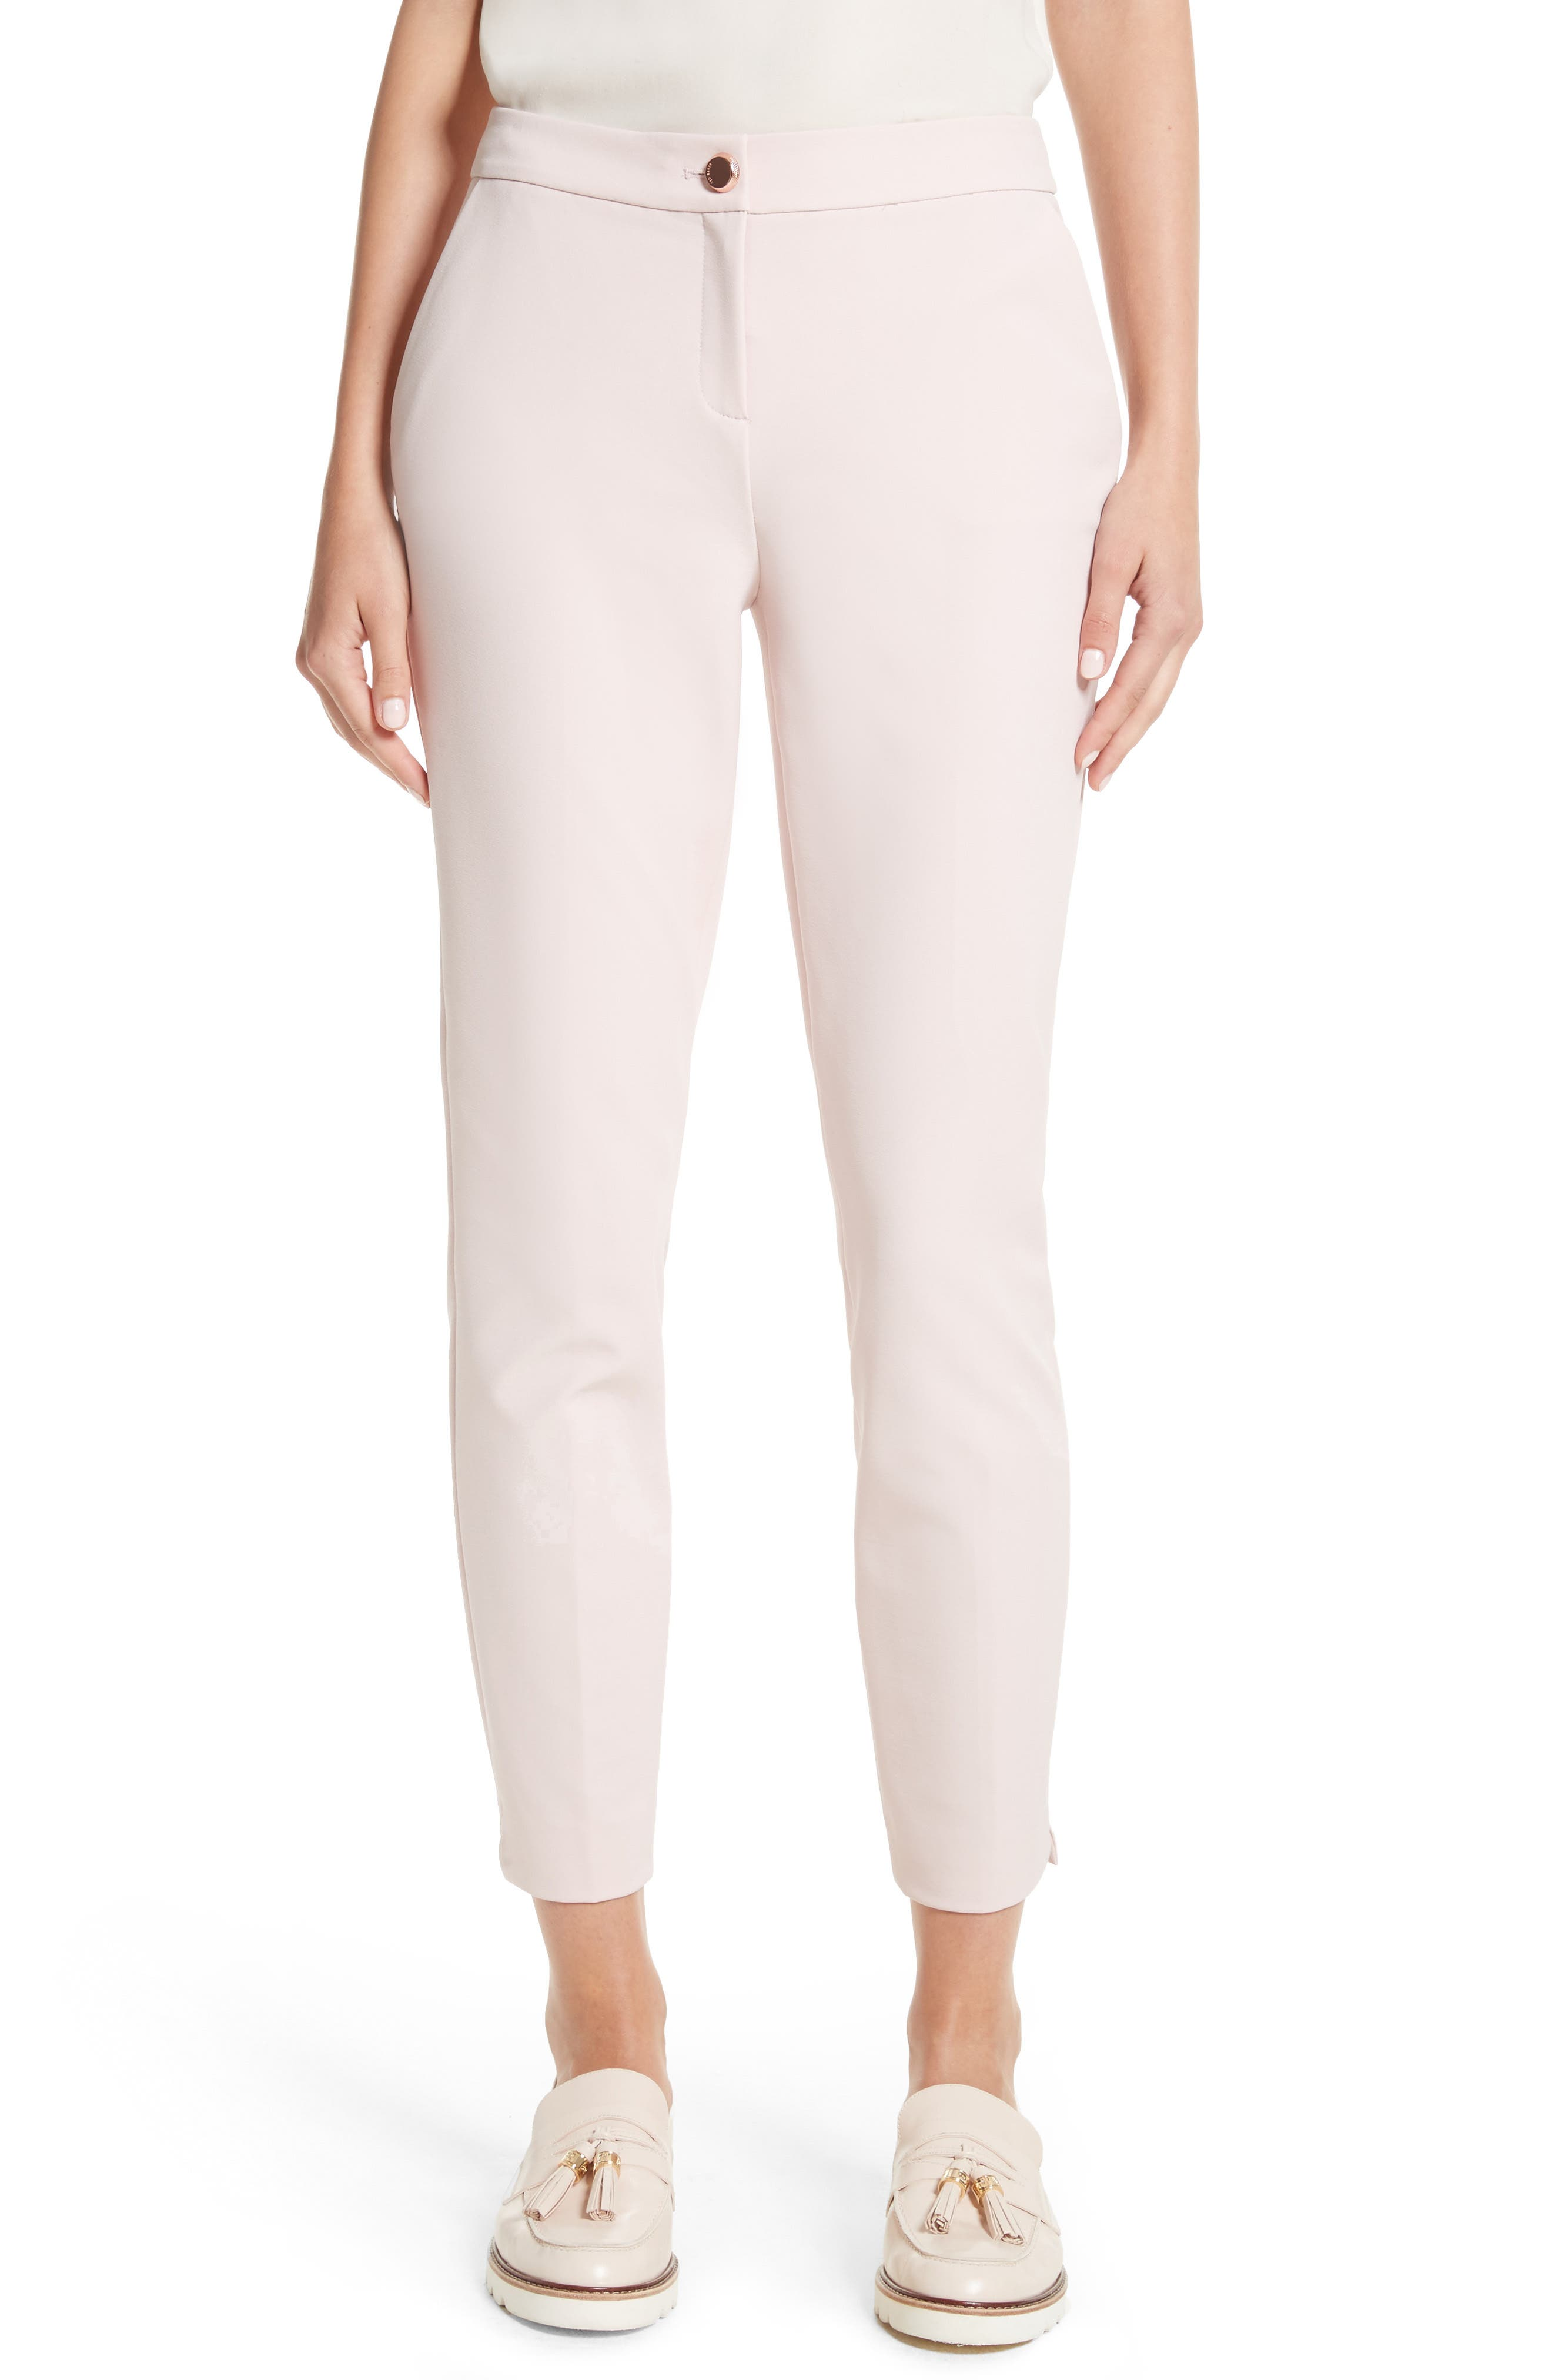 Ted Baker London Suria Tailored Ankle Grazer Trousers